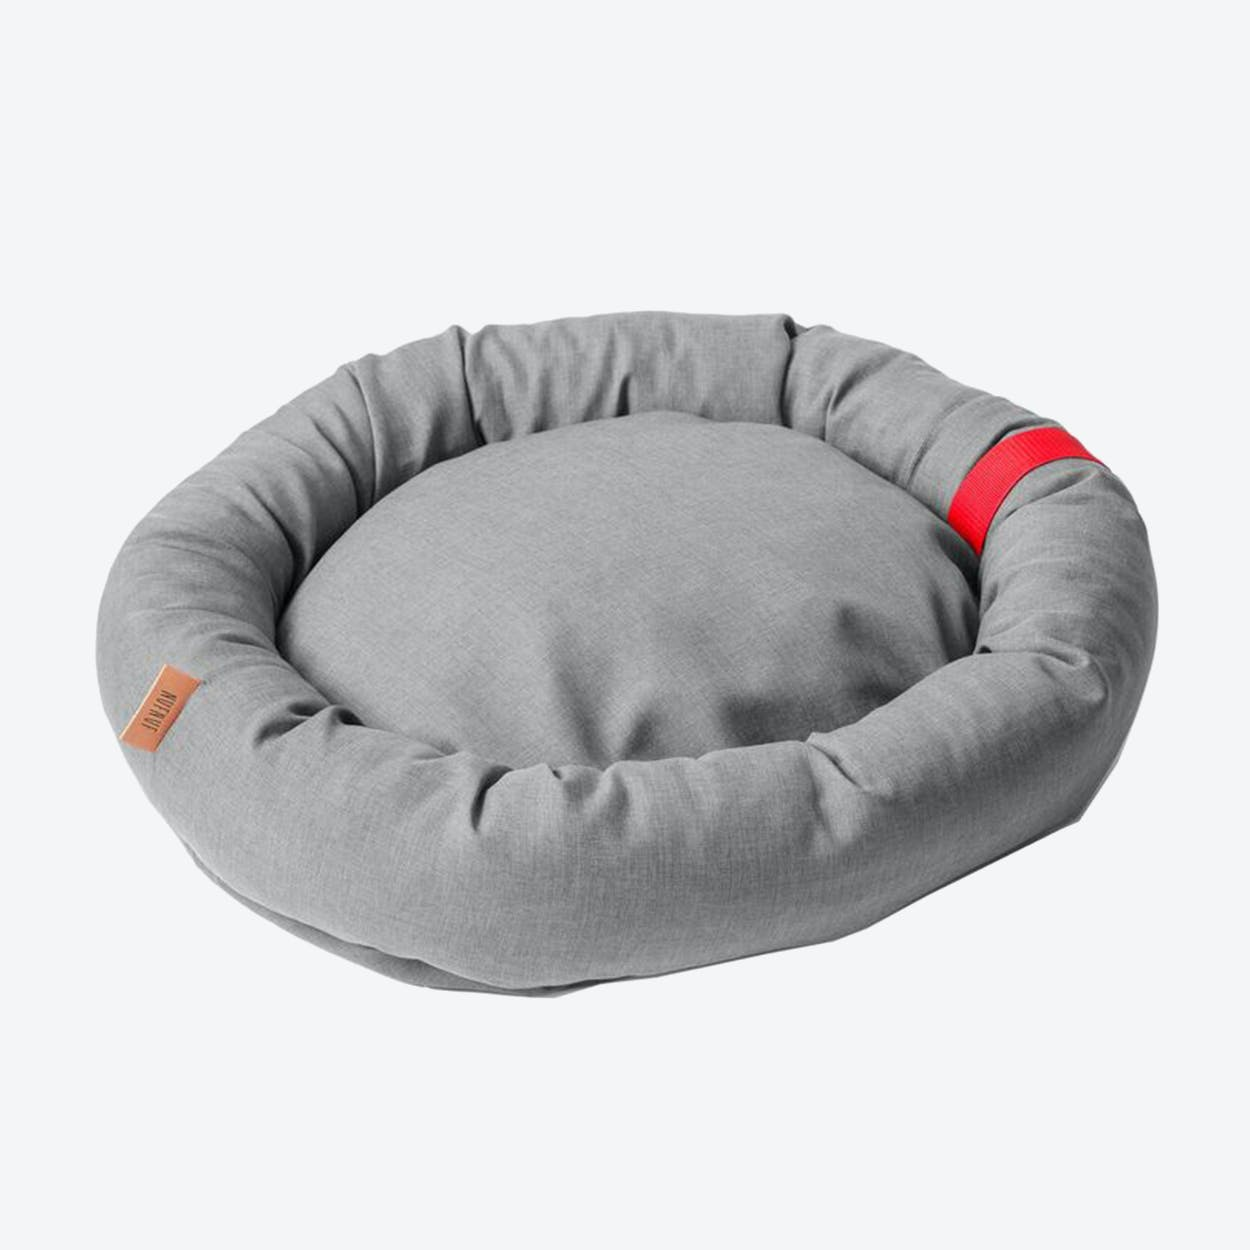 Buddy Bed in Light Grey